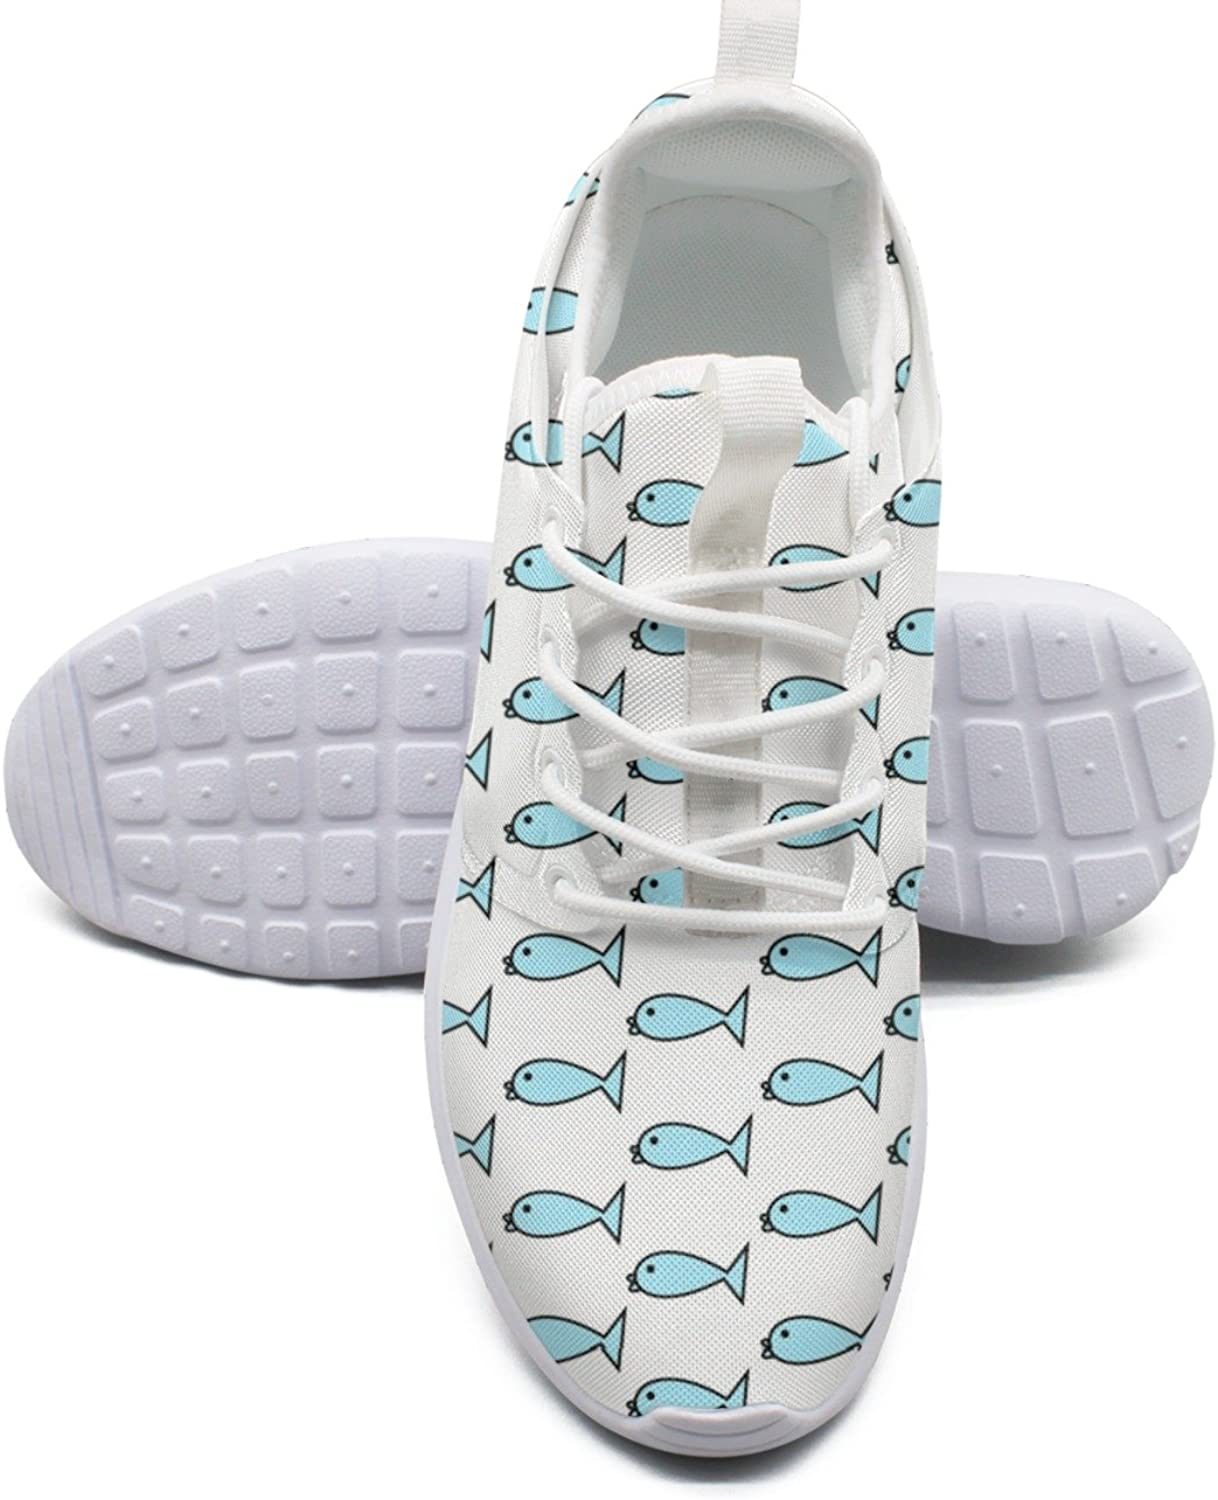 Women's Fashion Lightweight Basketball Sneakers Cute Fish Pattern Original Athletic shoes